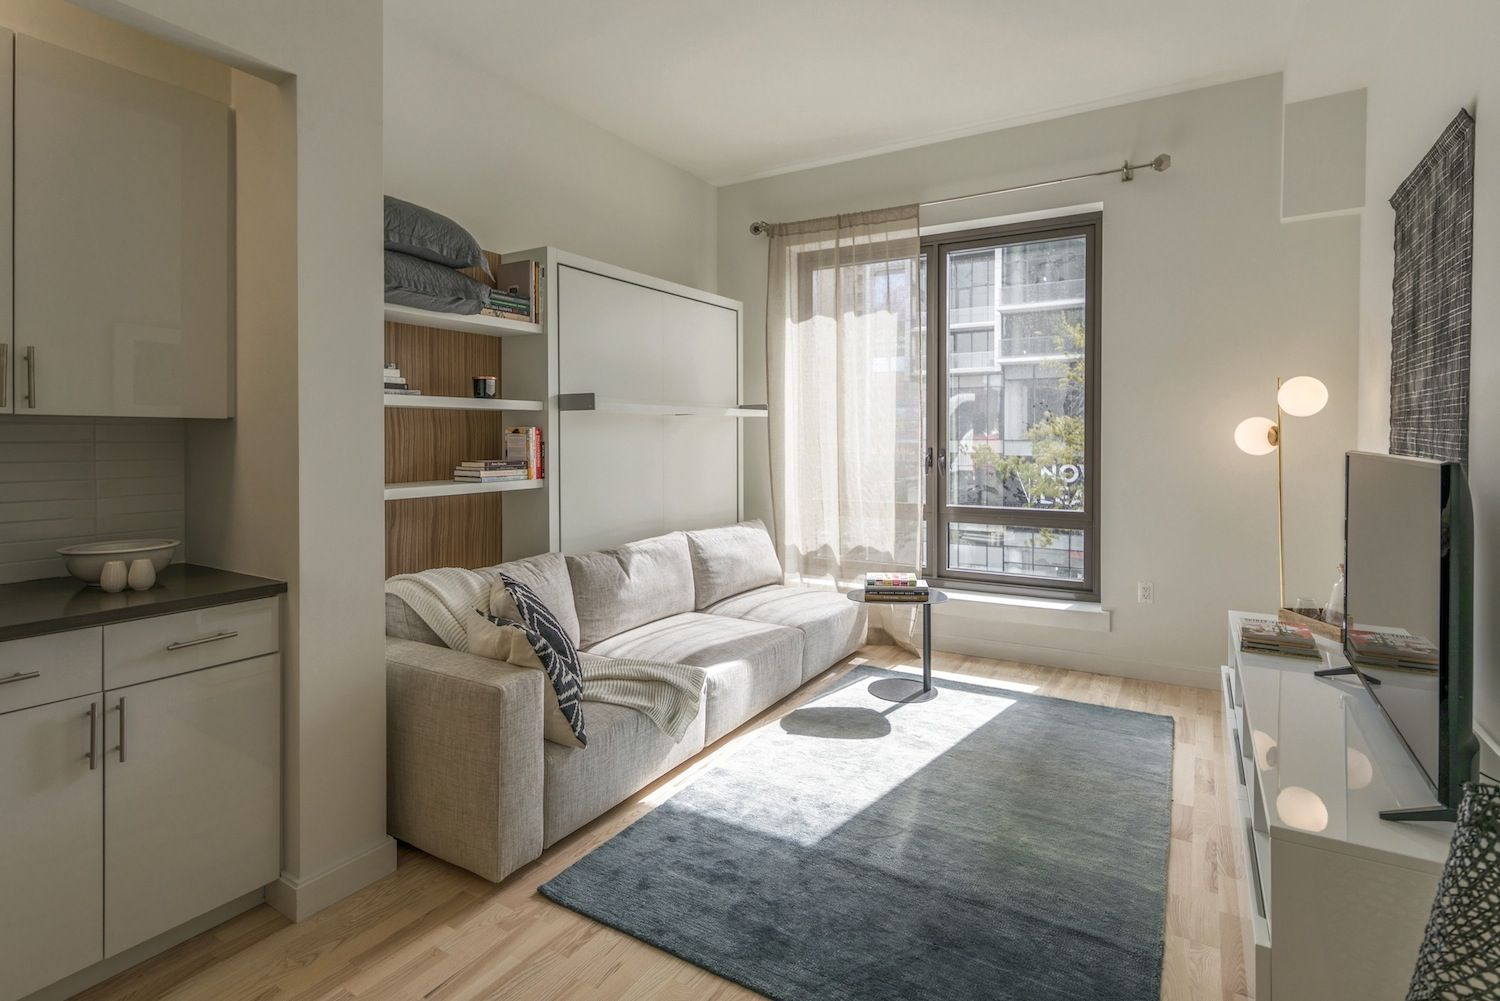 New Brooklyn rental offers some of the smallest legal